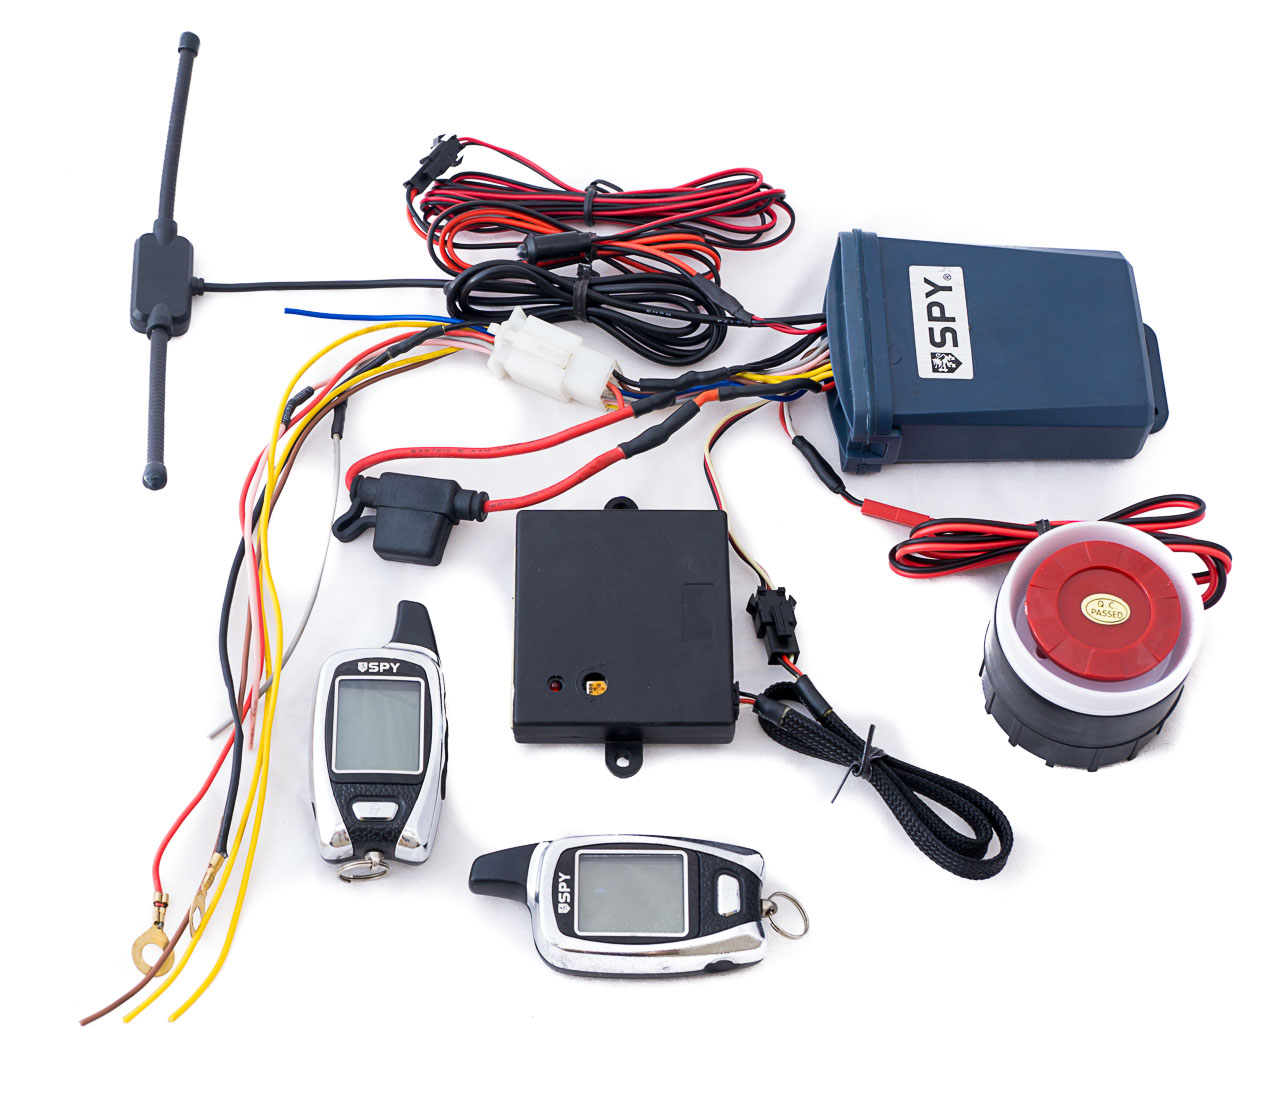 Types Of Motorcycle Alarm Systems The Best Millennial Diyer Wiring Diagram For Led Indicators 2 Way Motorbike Security System Might Sound Like But In Practice They Arent Any Better Than 1 Alarms